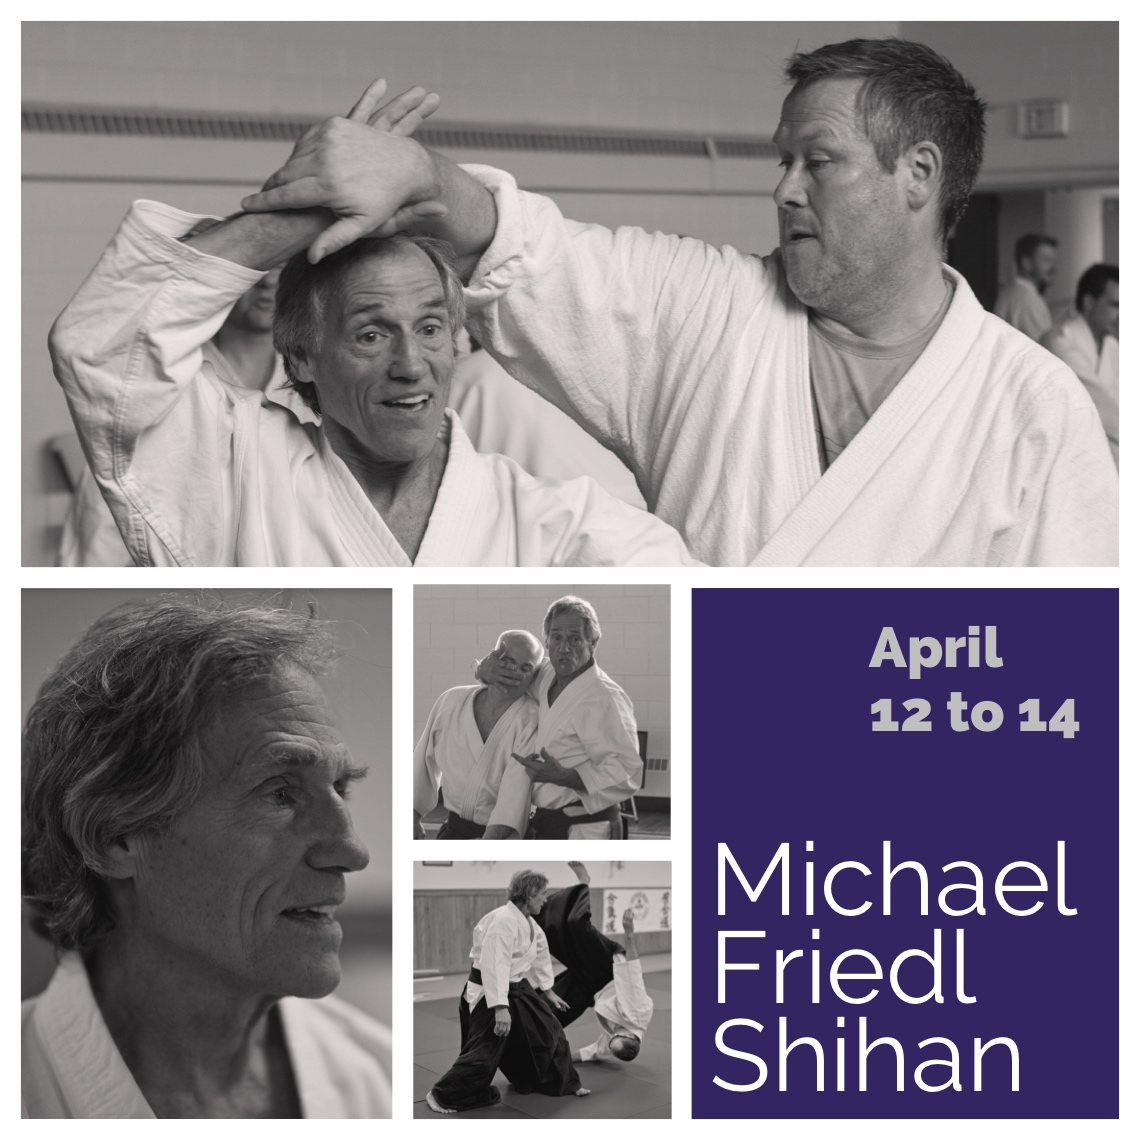 Michael Friedl Shihan teaching aikido